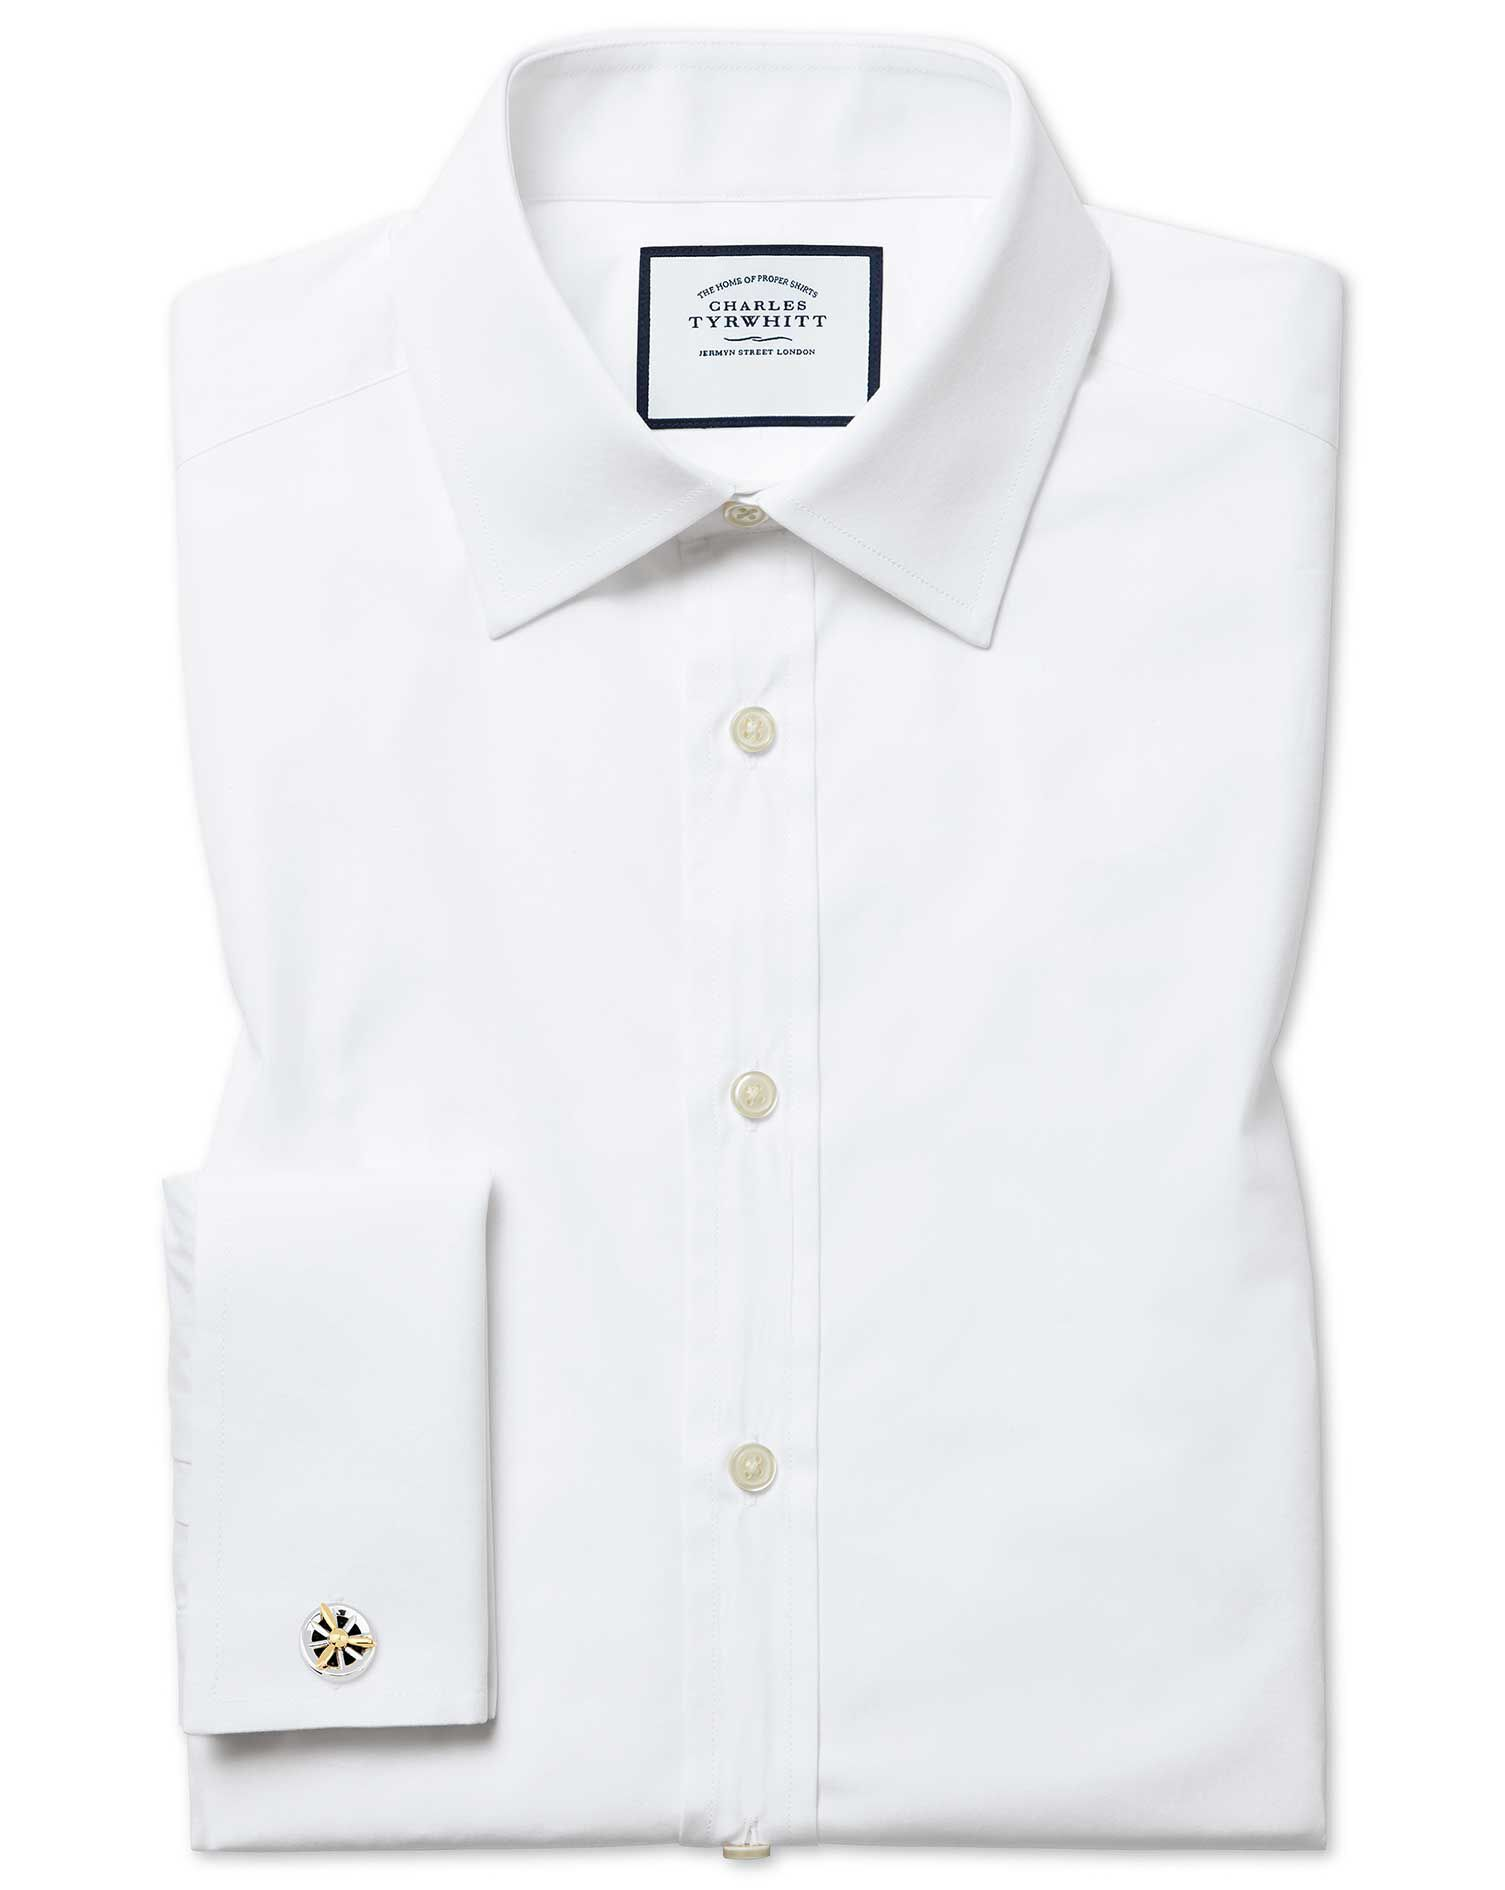 Charles Tyrwhitt Classic Fit Egyptian Cotton Poplin White Formal Shirt Size 17.5/34